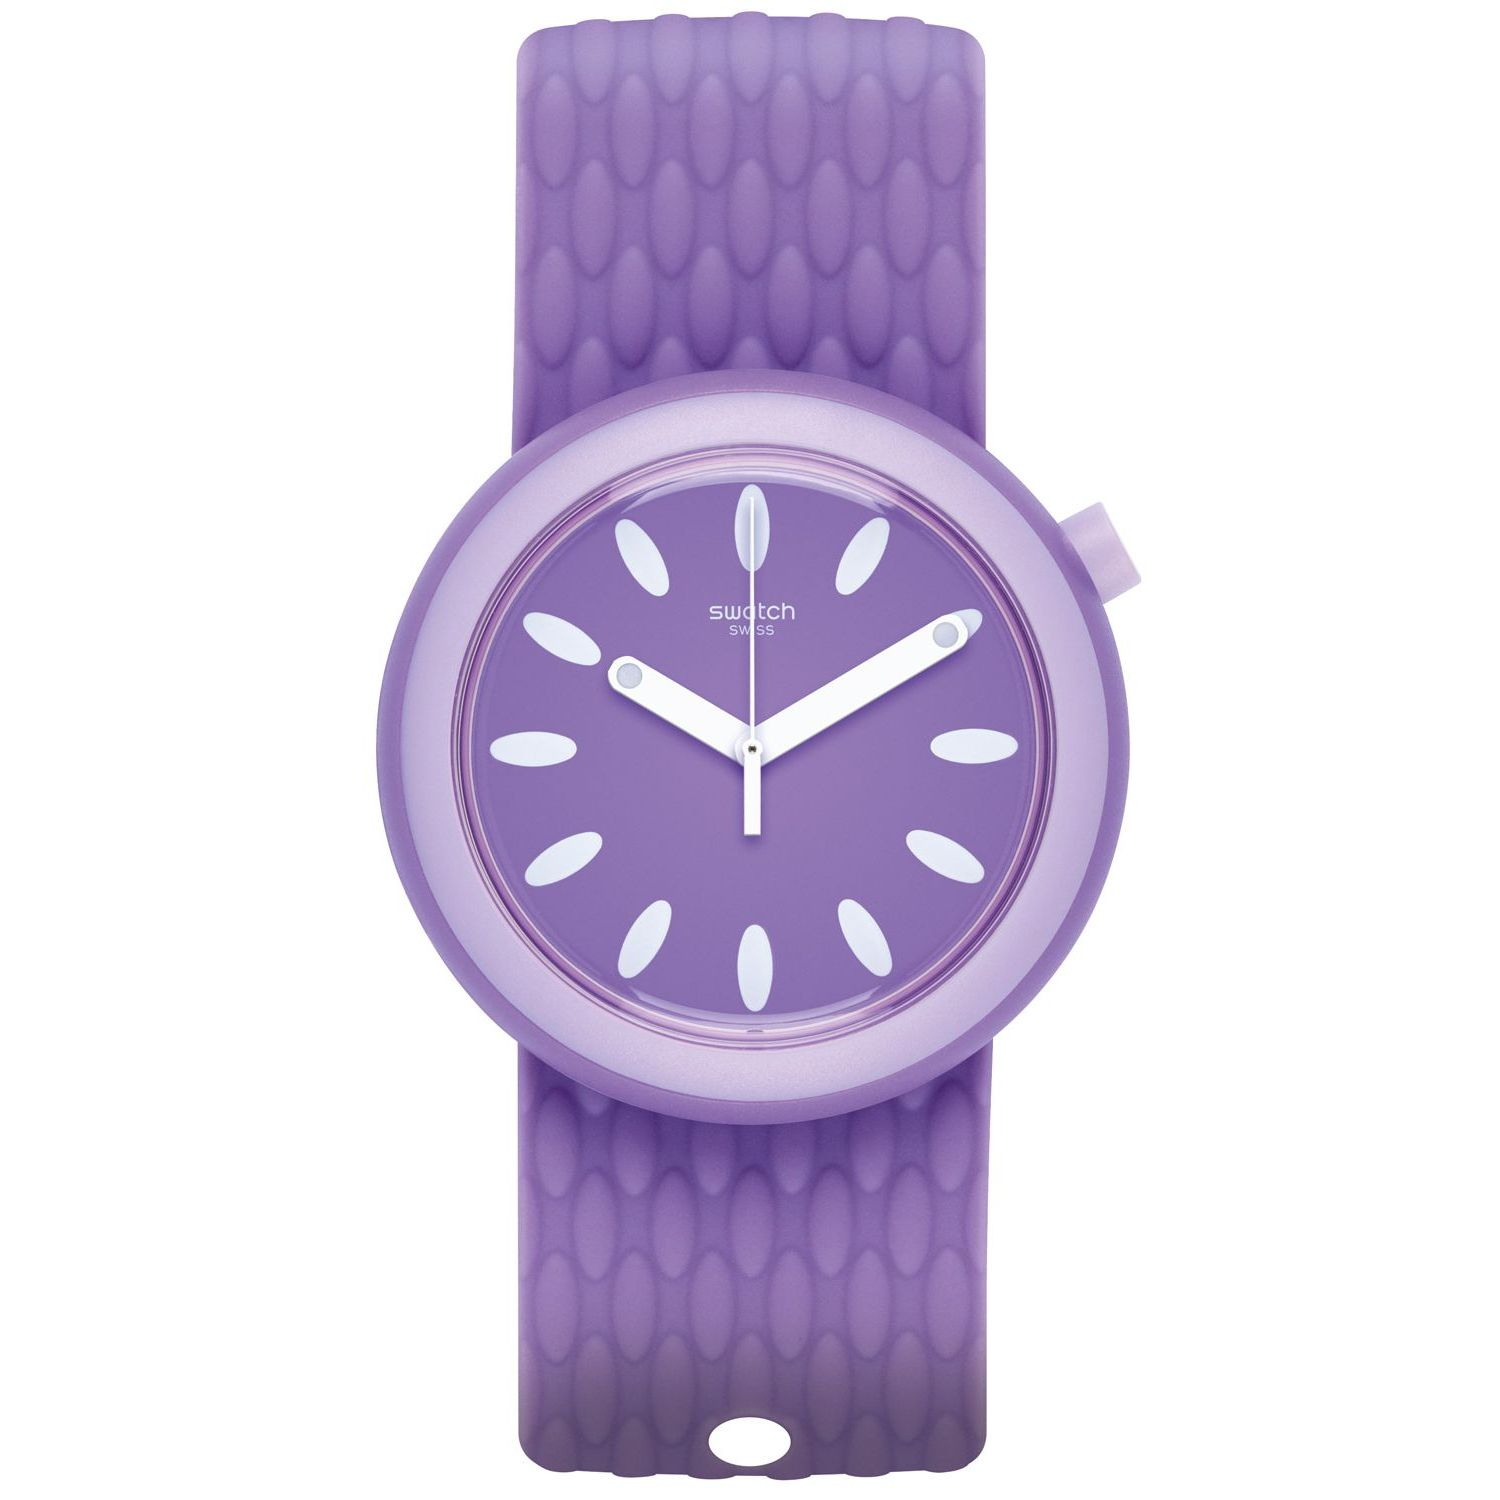 swatch watchshop originala watches switch com yokorace unisex watch